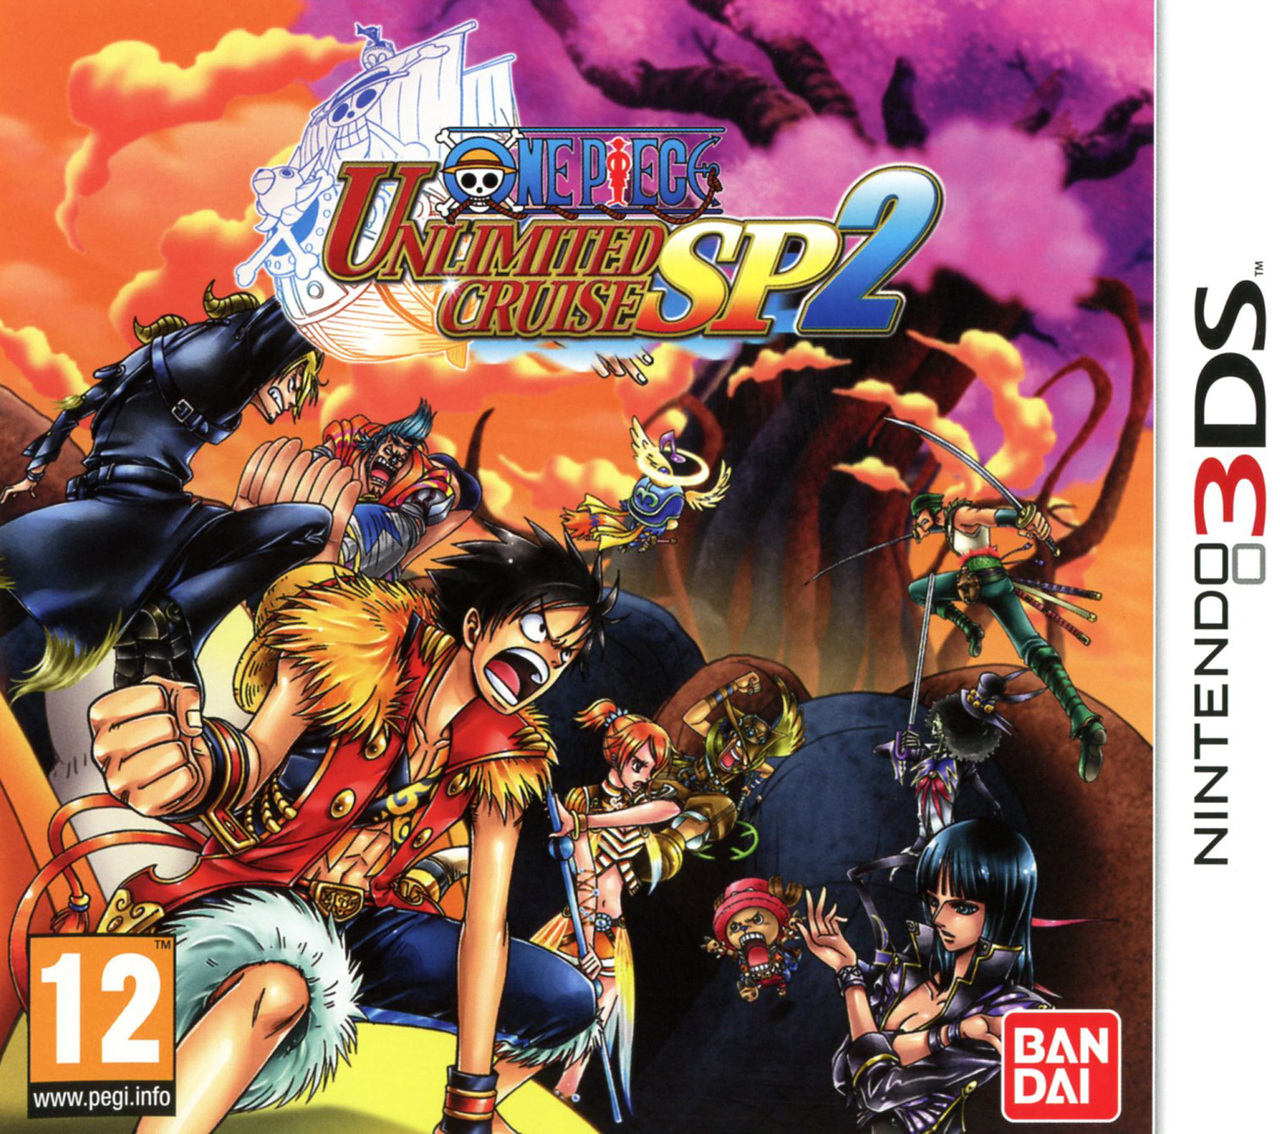 One piece unlimited cruise sp 2 sur nintendo 3ds for One piece juego